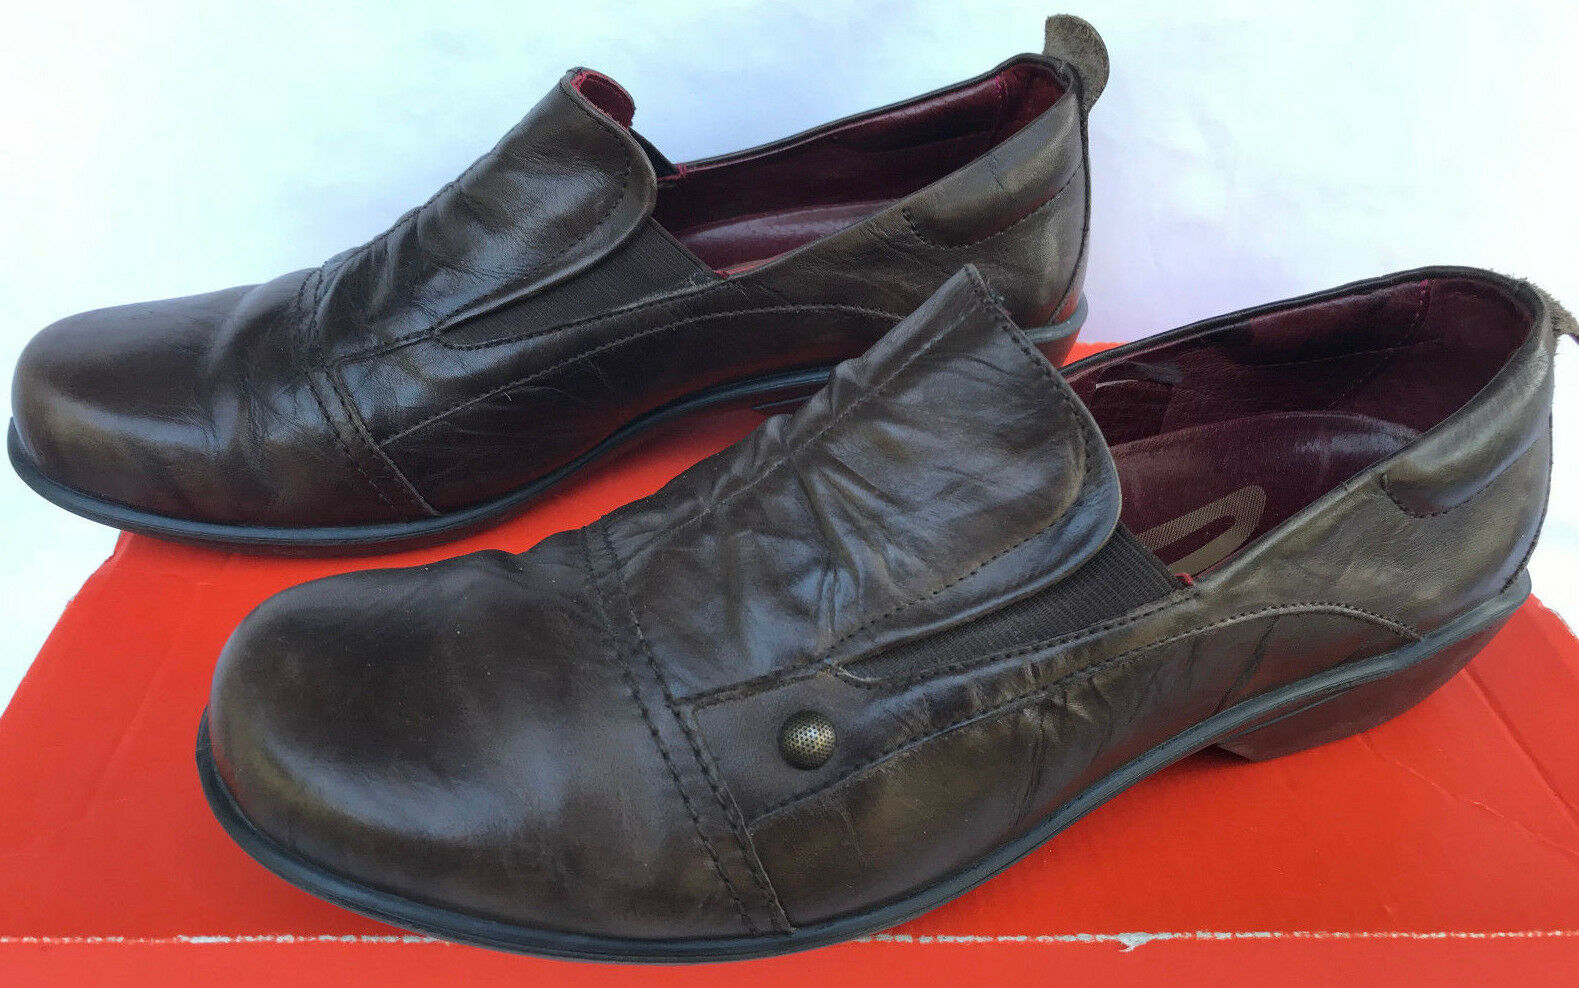 ROMIKA Cassie Wrinkled Brown Leather Slip-On Loafers shoes Women's 8.5 Eur 39